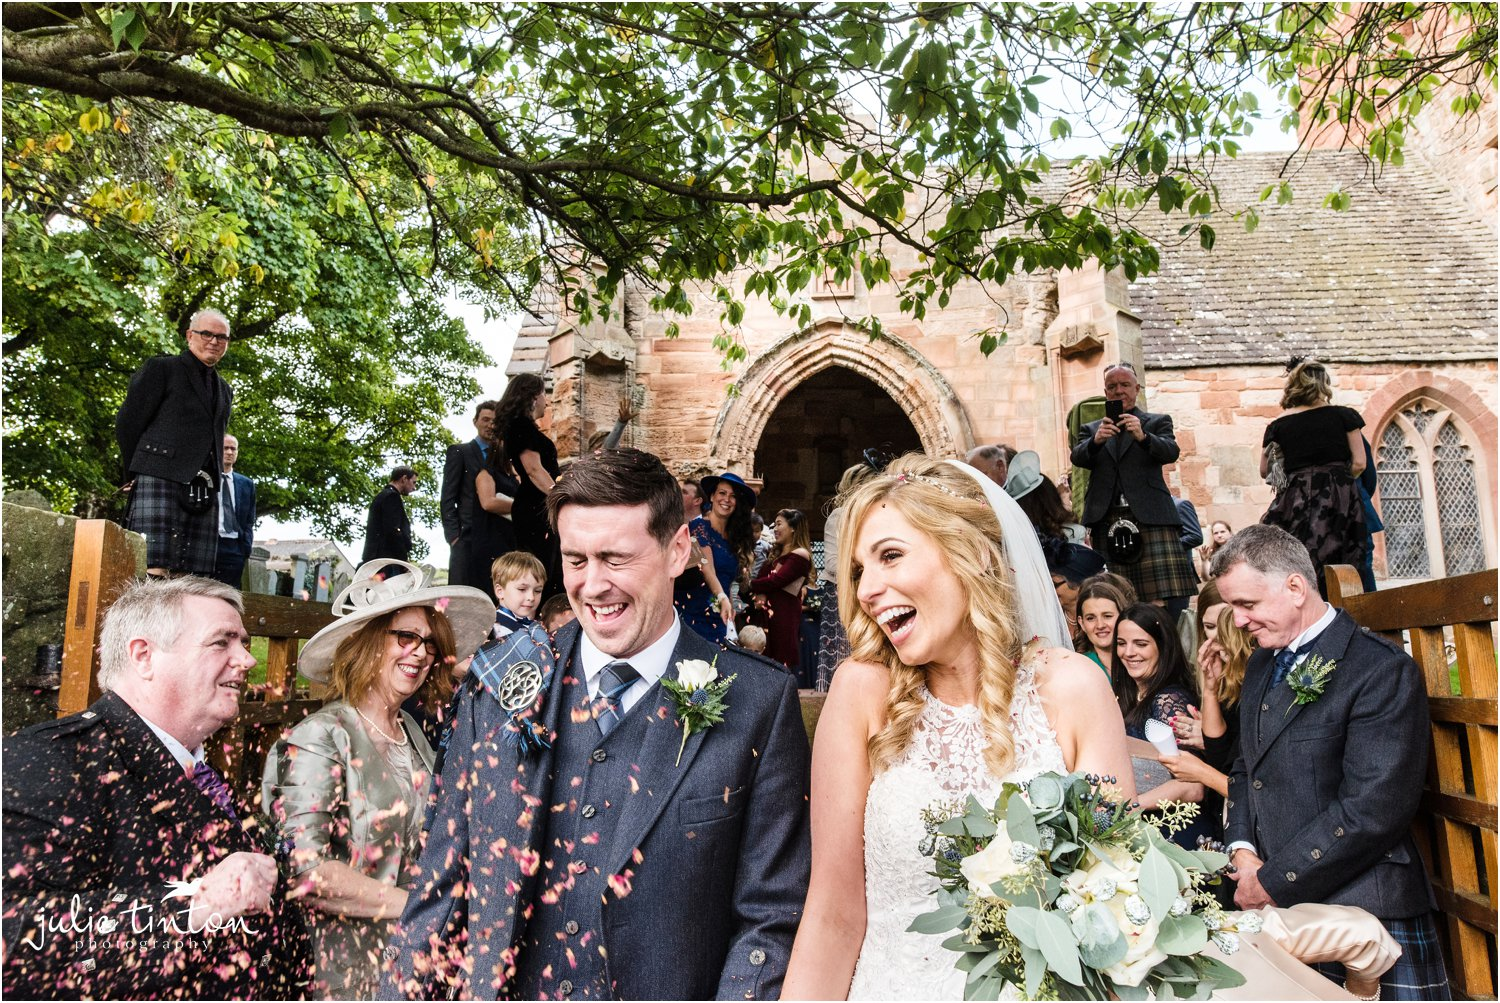 Bride and Groom laughing at confetti at church wedding